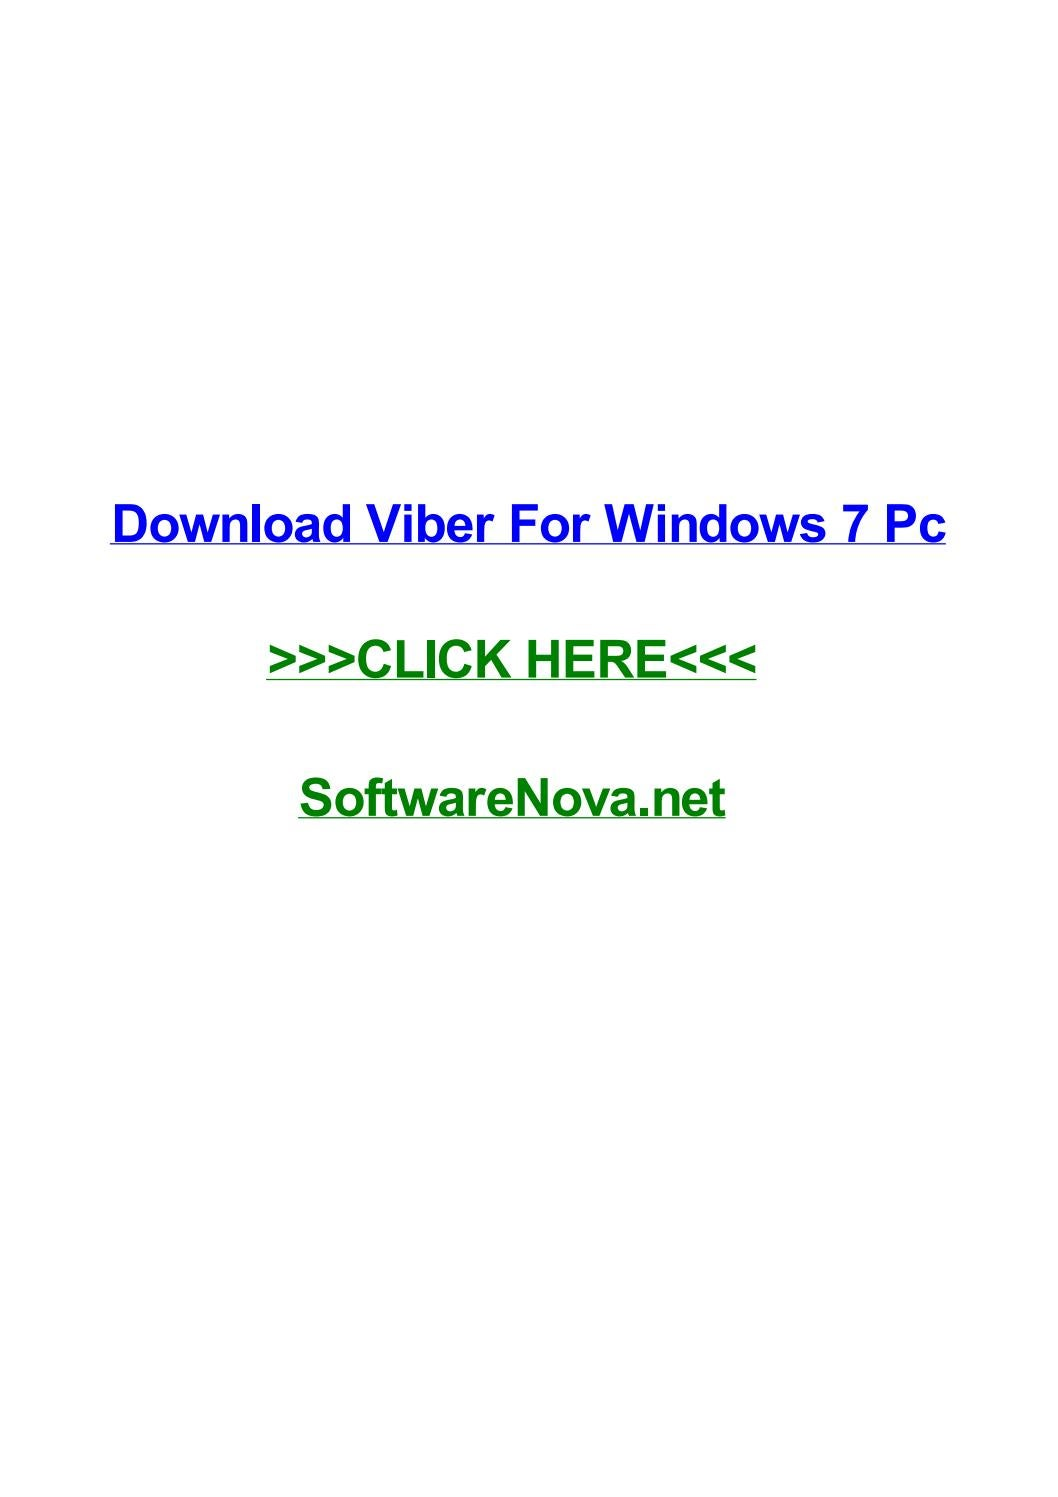 Download viber for windows 7 pc by angelnwjp - issuu